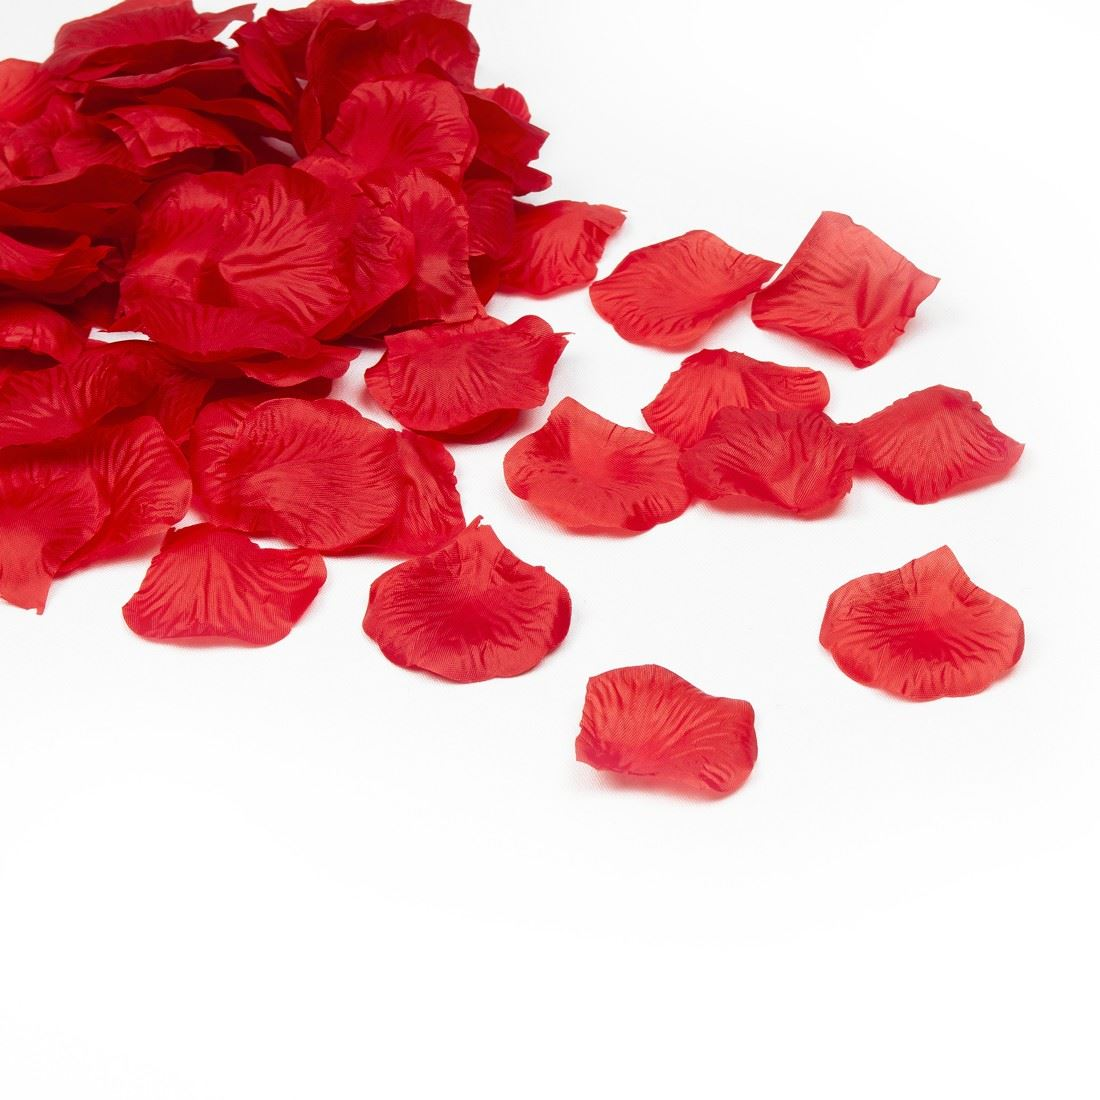 Celebrate Valentines Day Decorations And Novelty Gifts For